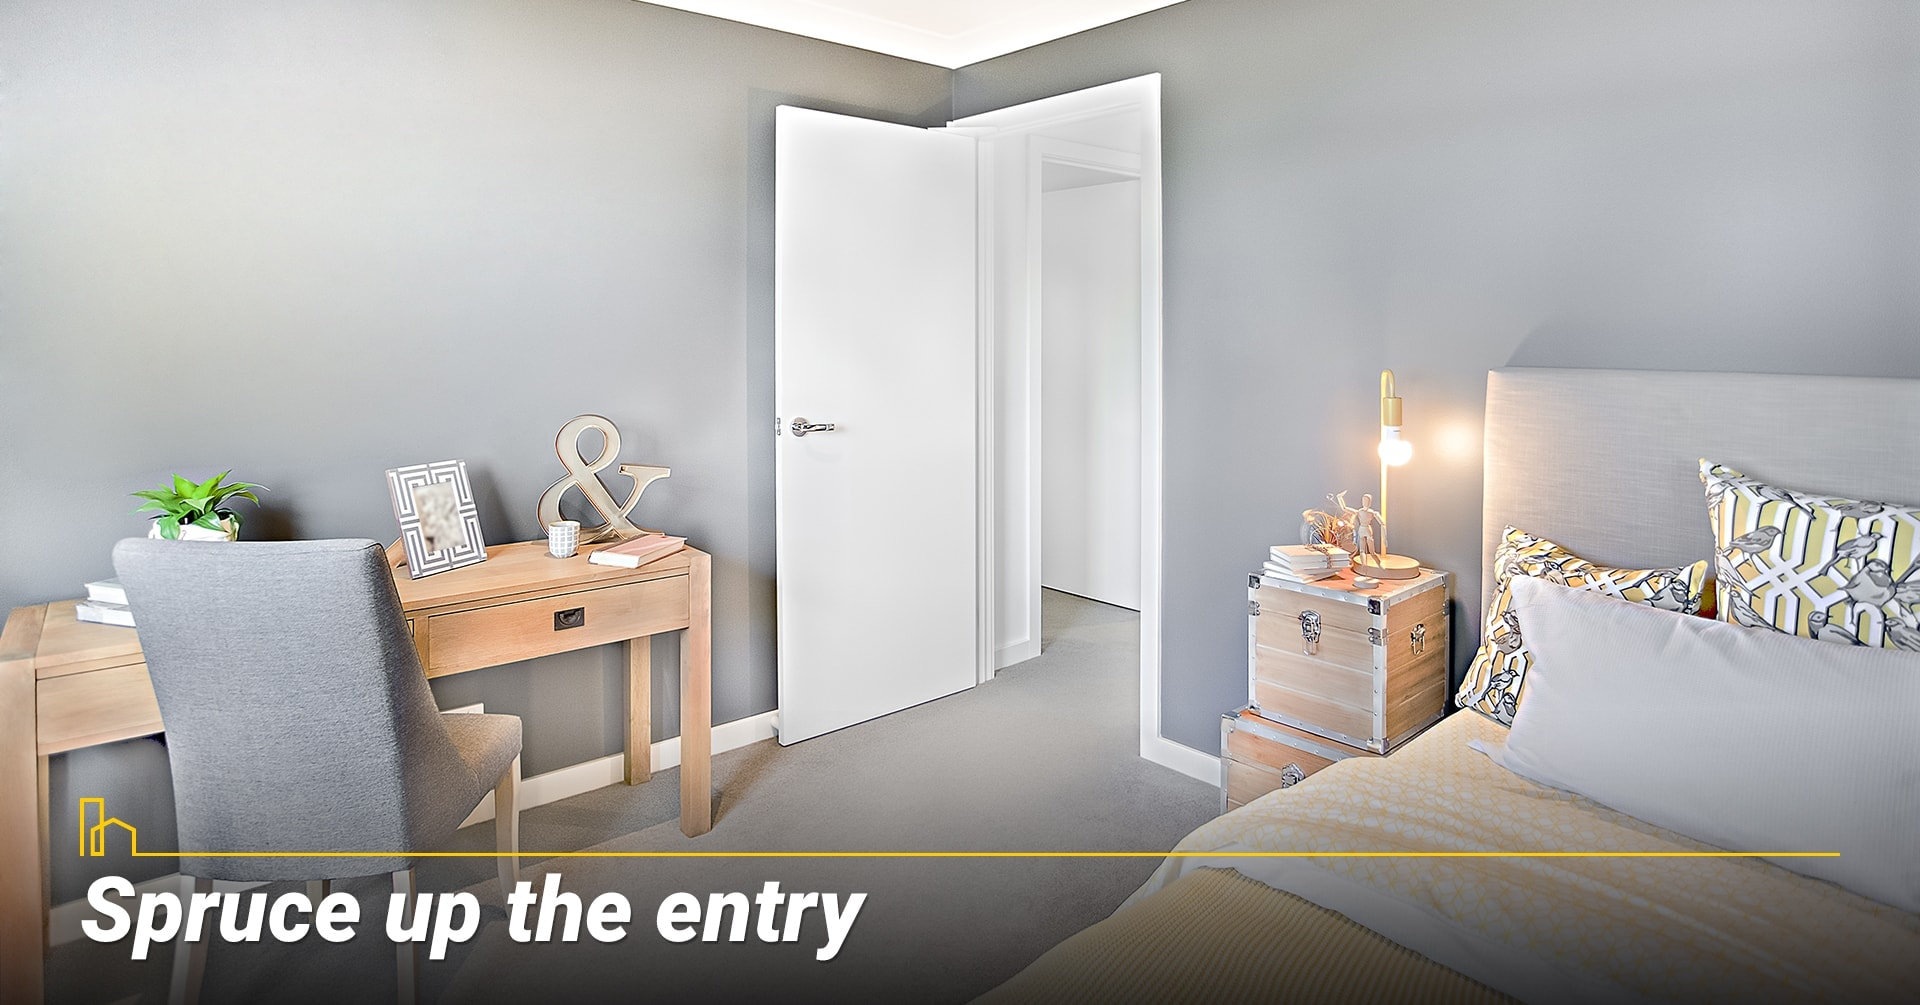 Spruce up the entry, clean up your entry